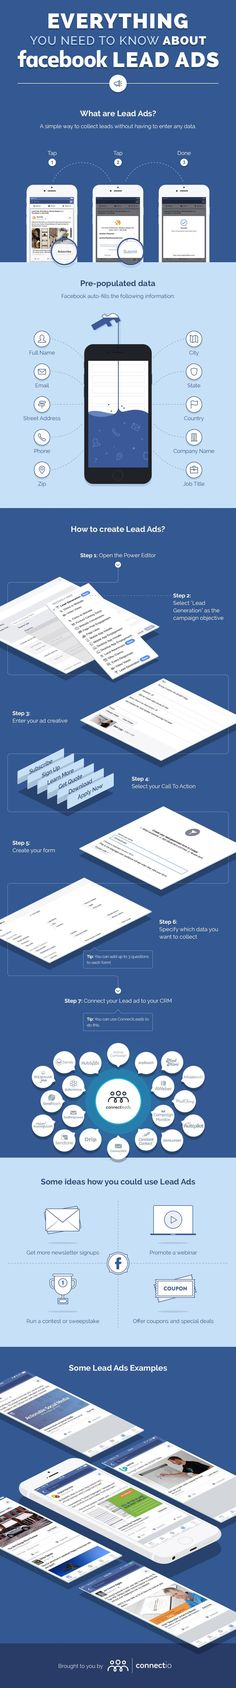 Everything You Need to Know About Facebook Lead Ads - #infographic